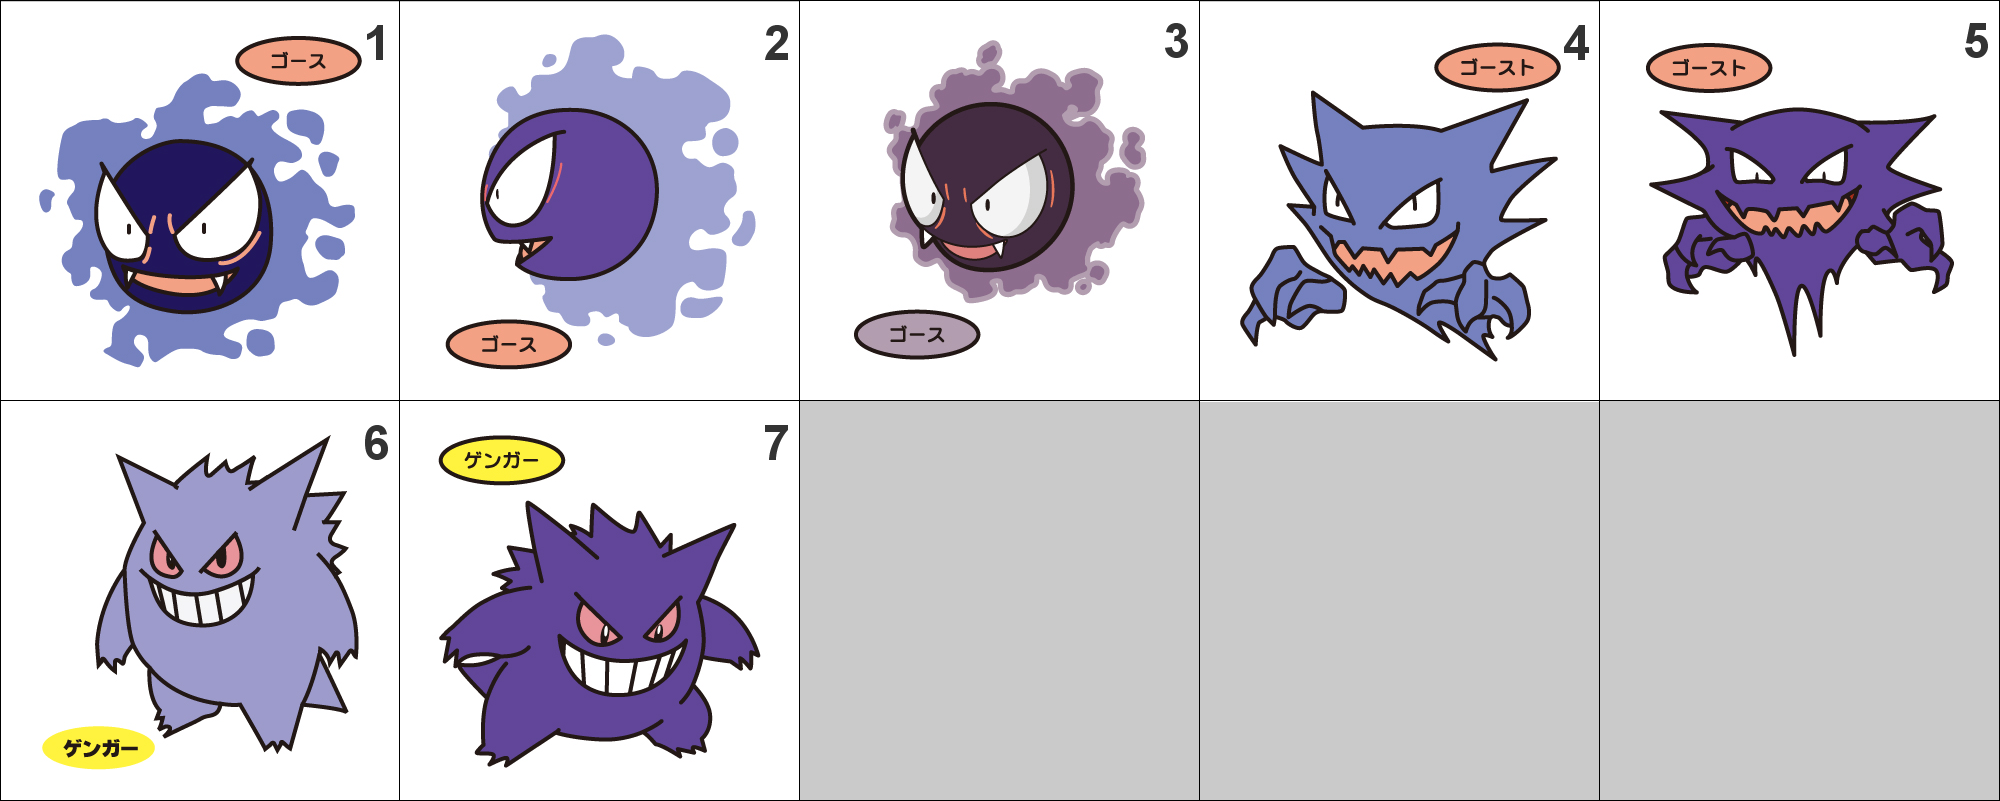 86dd2d78 092, 093, 094 Gastly, Haunter, Gengar Pan Stickers Pokemon on Storenvy